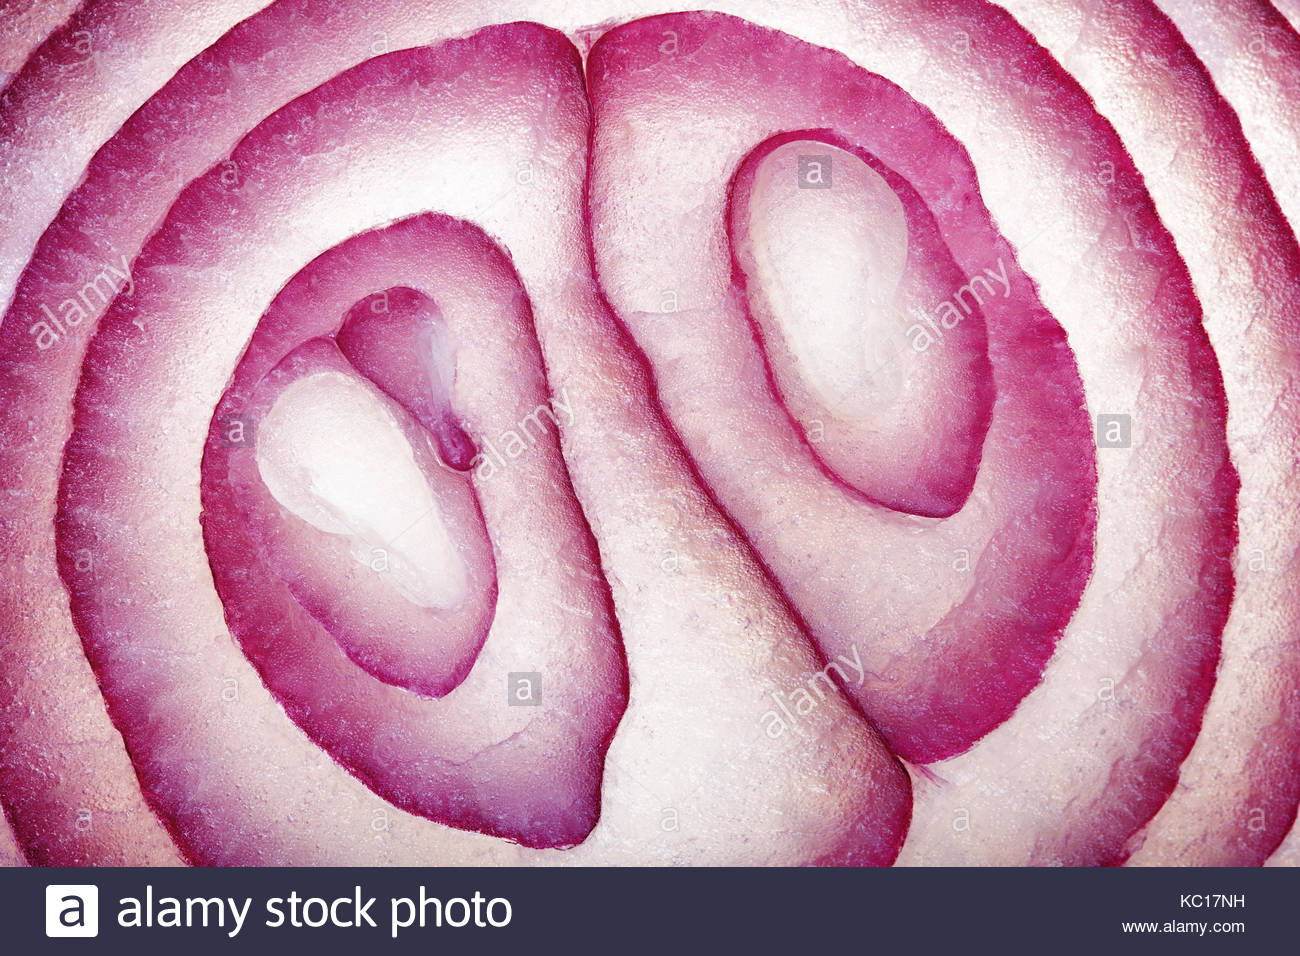 Abstract Food Art Pattern of Red Onion Cross-section photographed close-up and full frame - Stock Image